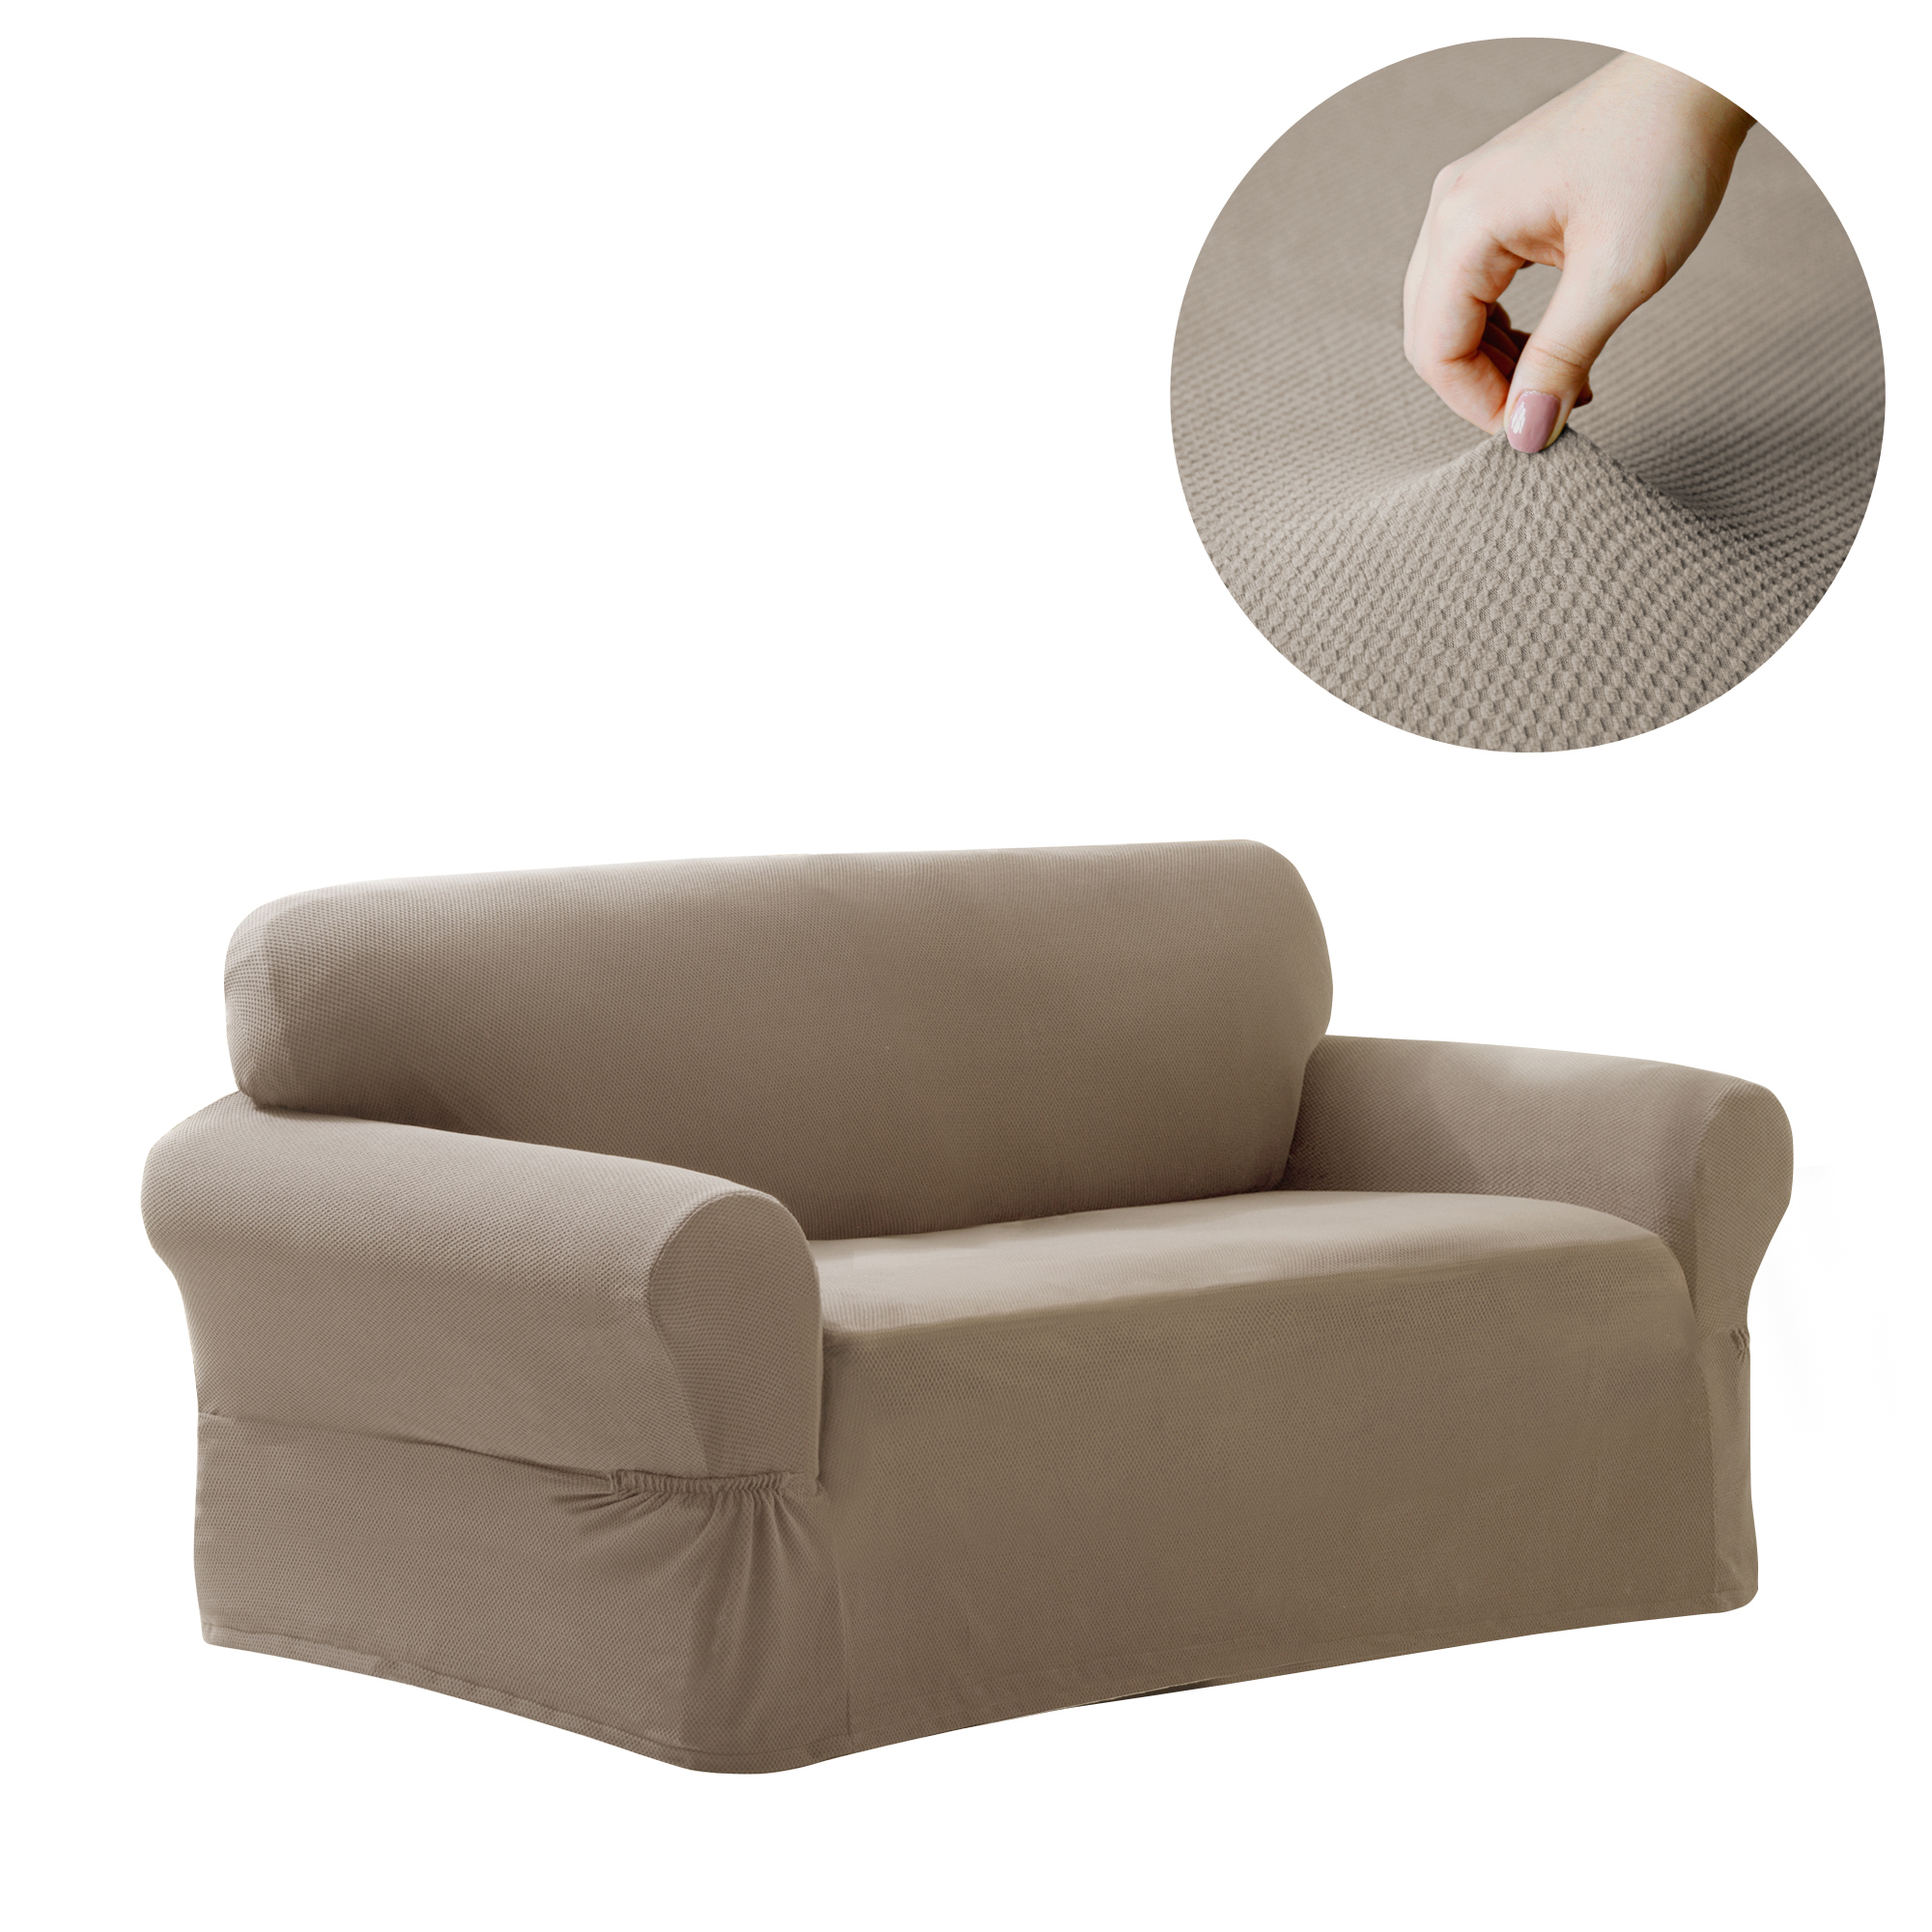 Maytex Stretch Pixel 1 Piece Loveseat Furniture Cover Slipcover, Sand